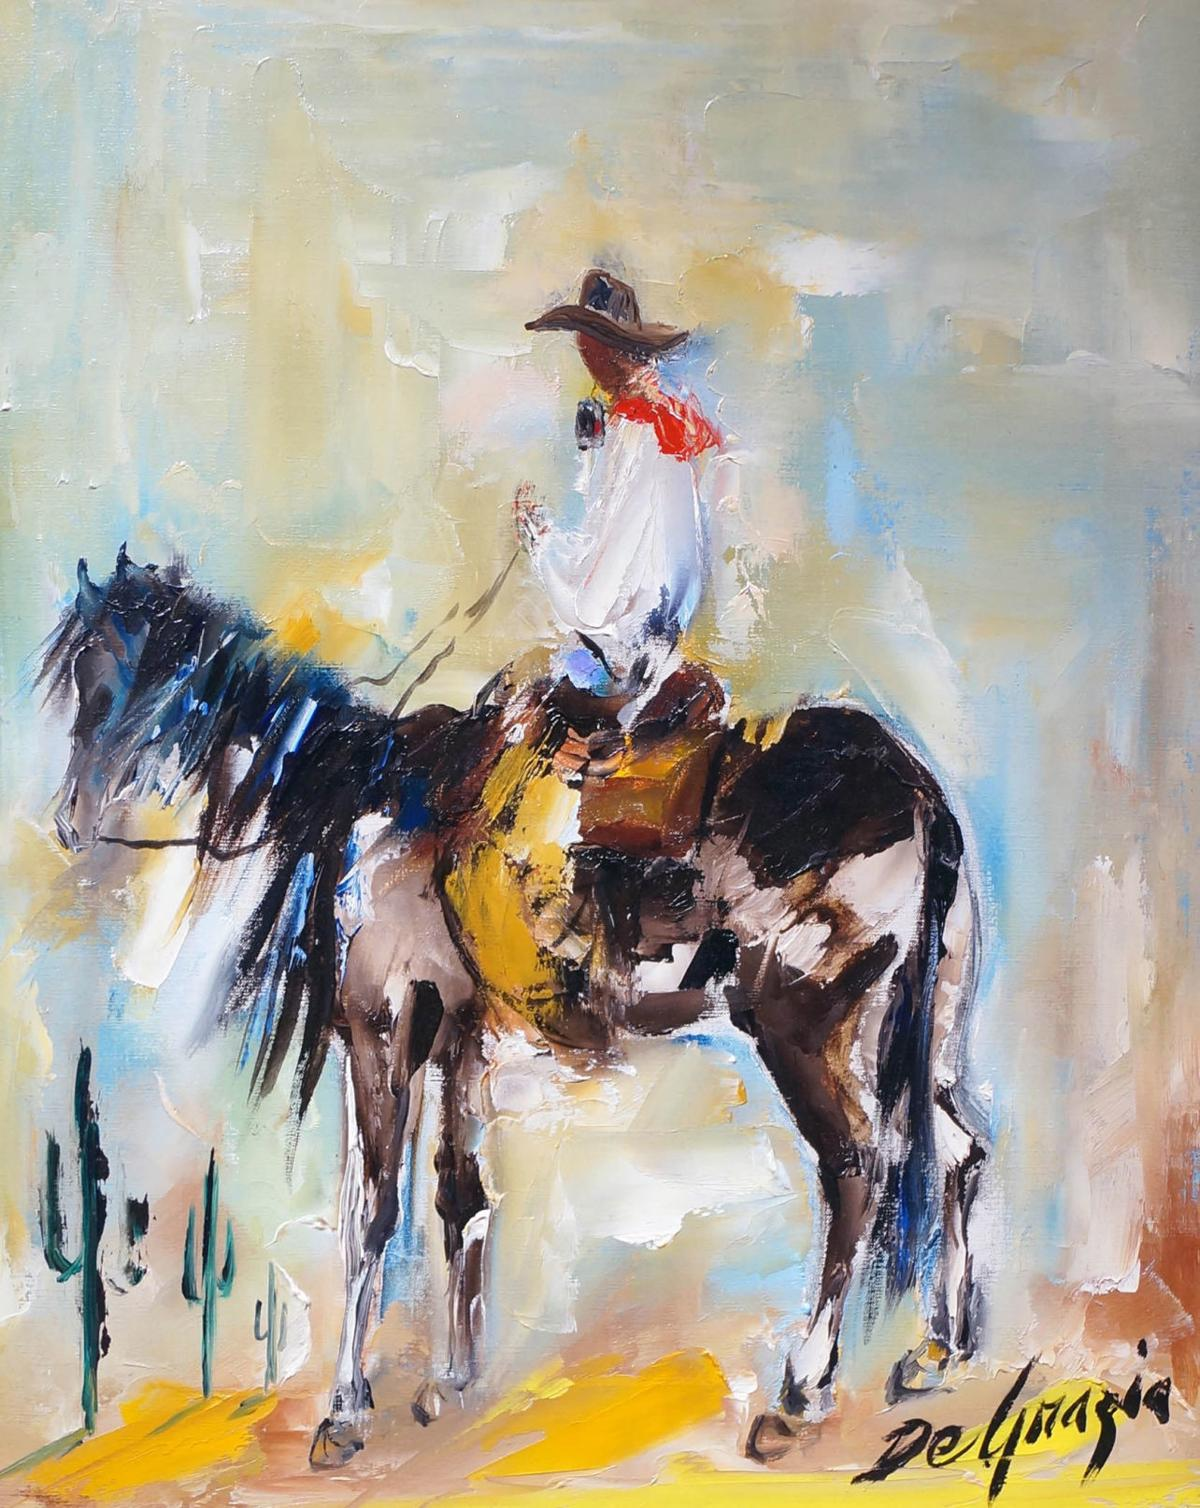 Act Scores Paint Troubling Picture For >> Degrazia S Arizona Highway Paintings At Gallery In The Sun